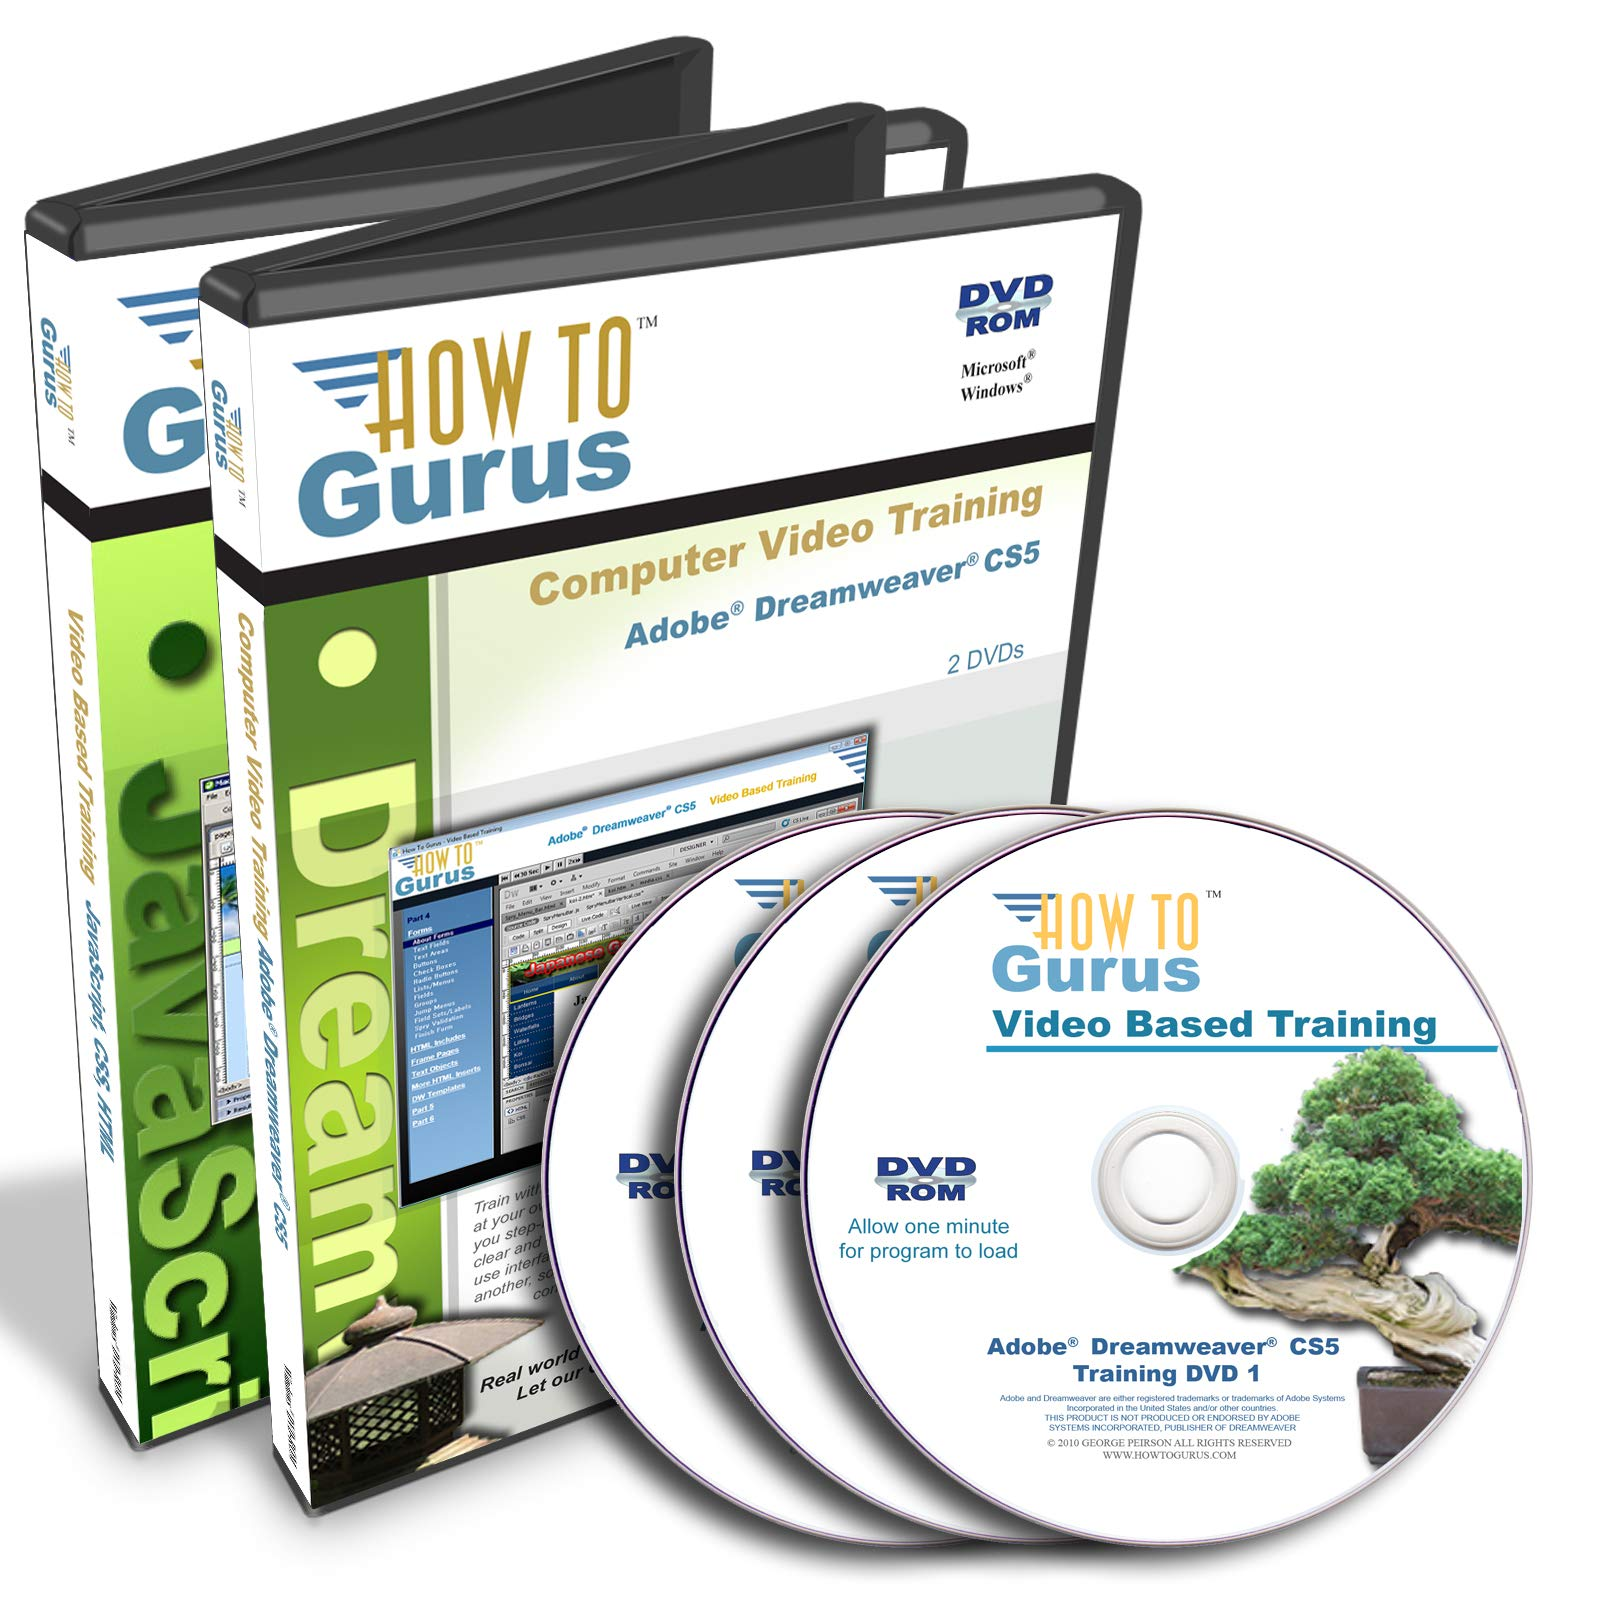 Adobe Dreamweaver CS5 Plus HTML Javascript CSS Tutorial Training on 3 DVDs 40 Hours in 427 Video Lessons Computer Software Video Tutorials by How To Gurus